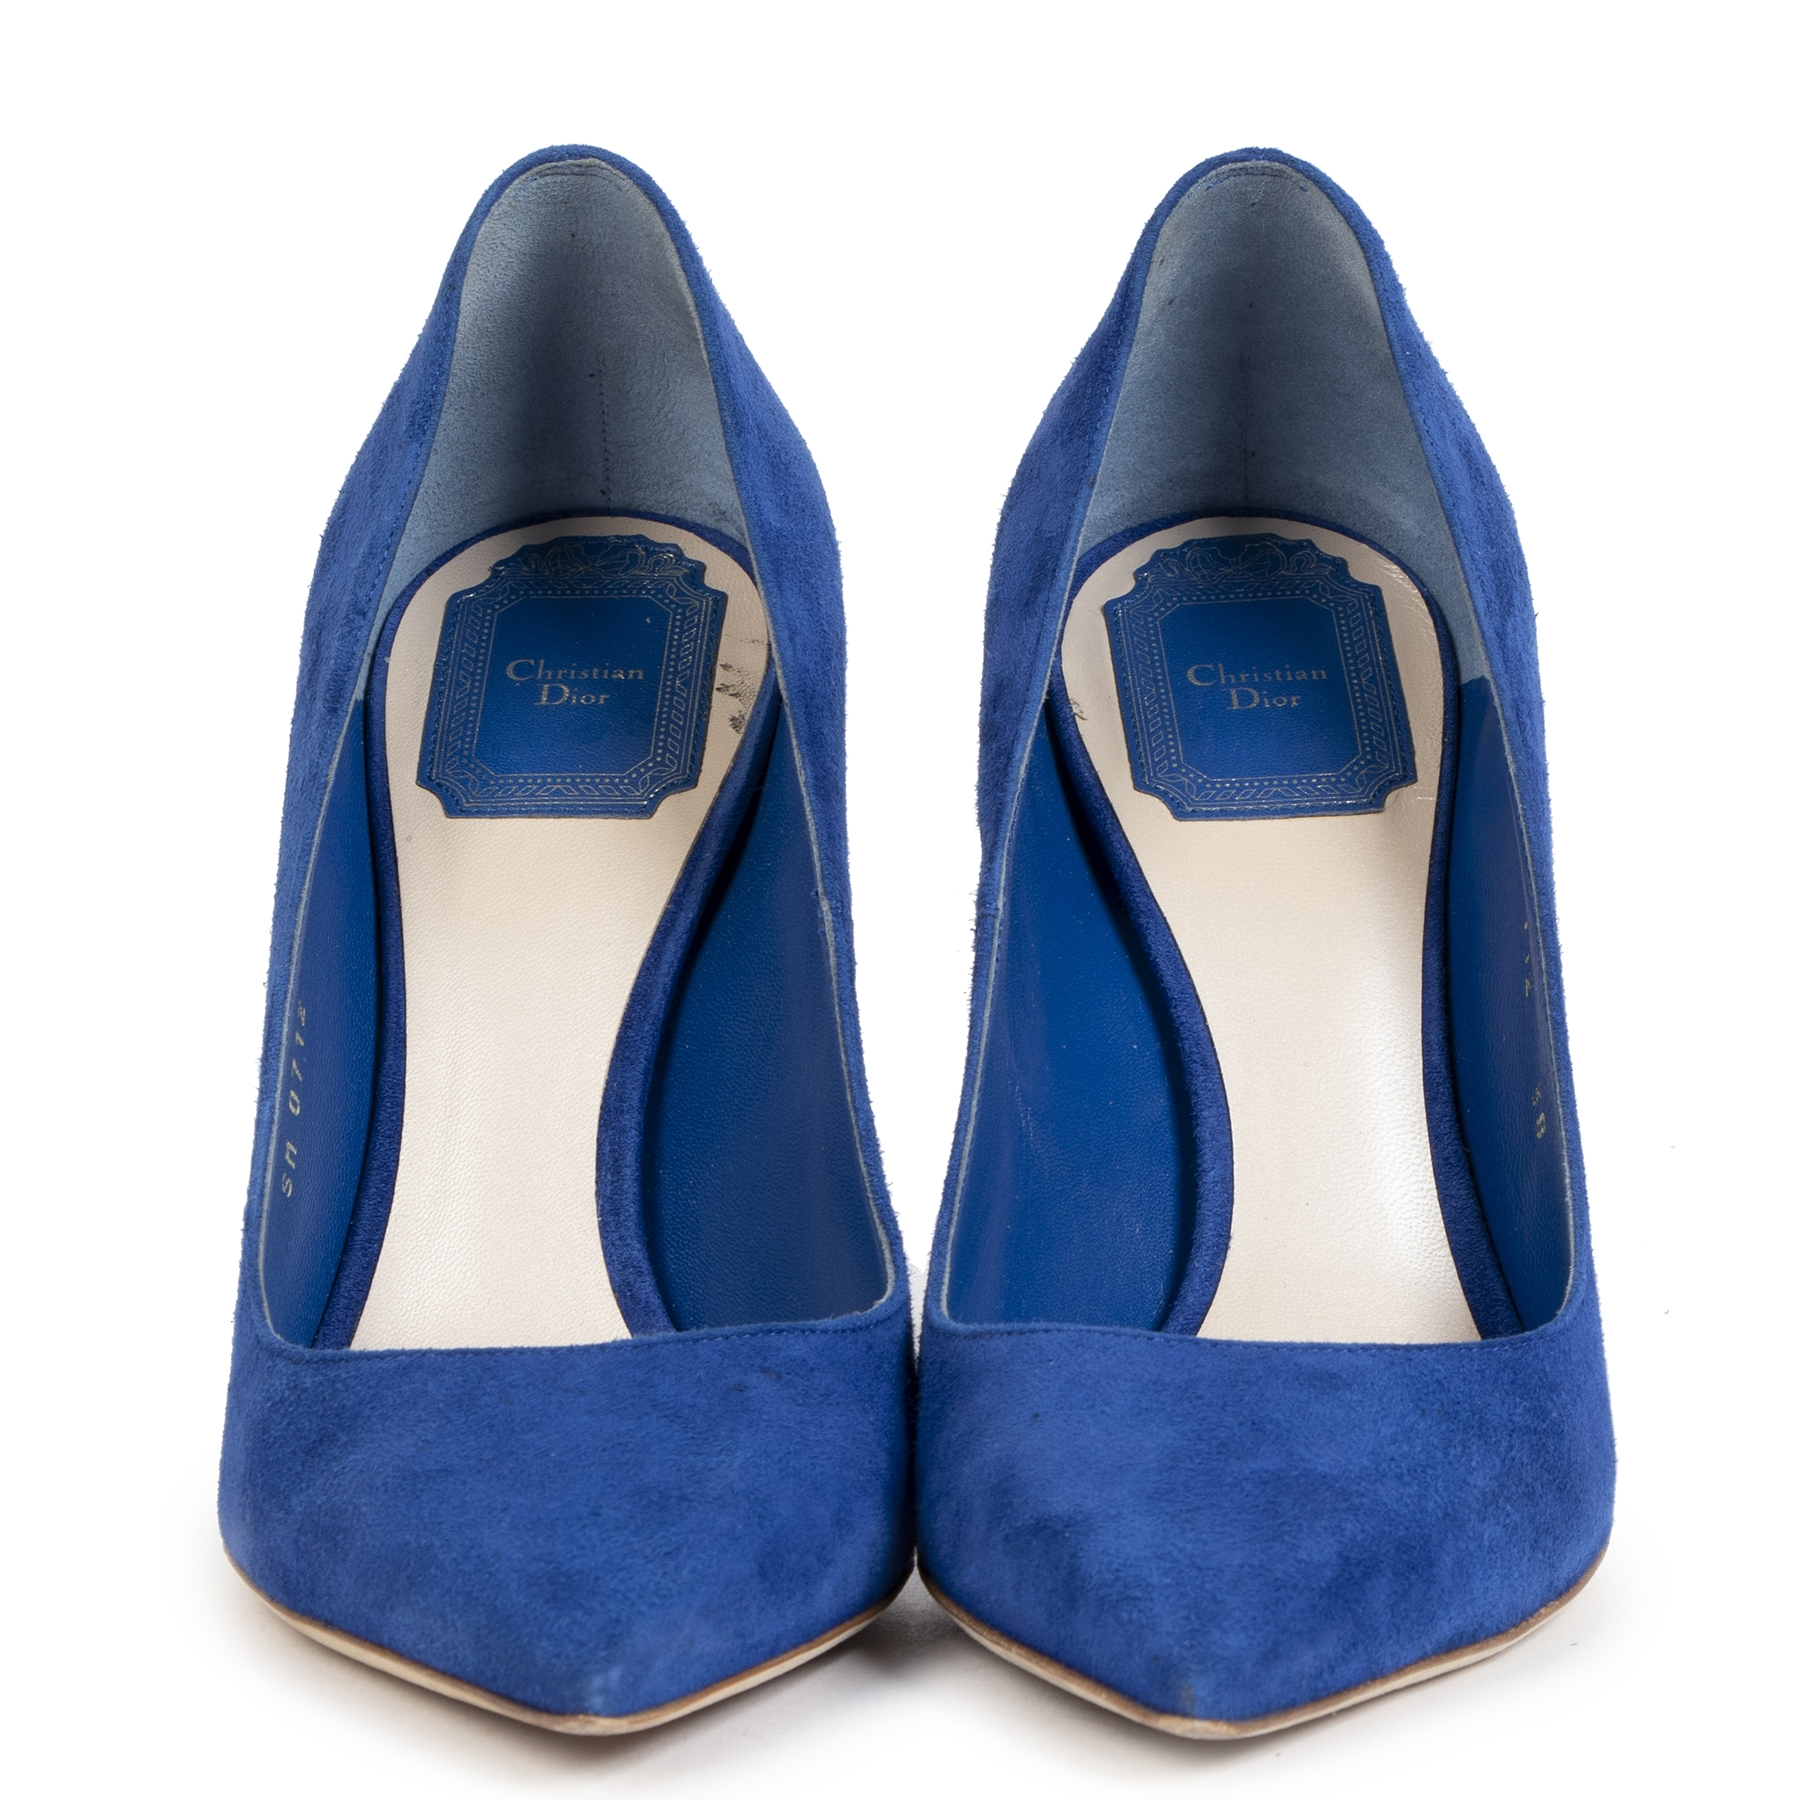 Authentic secondhand Dior Blue Suede Pumps - Size 38 designer bags designer accessories vintage webshop worldwide shipping safe secure online shopping